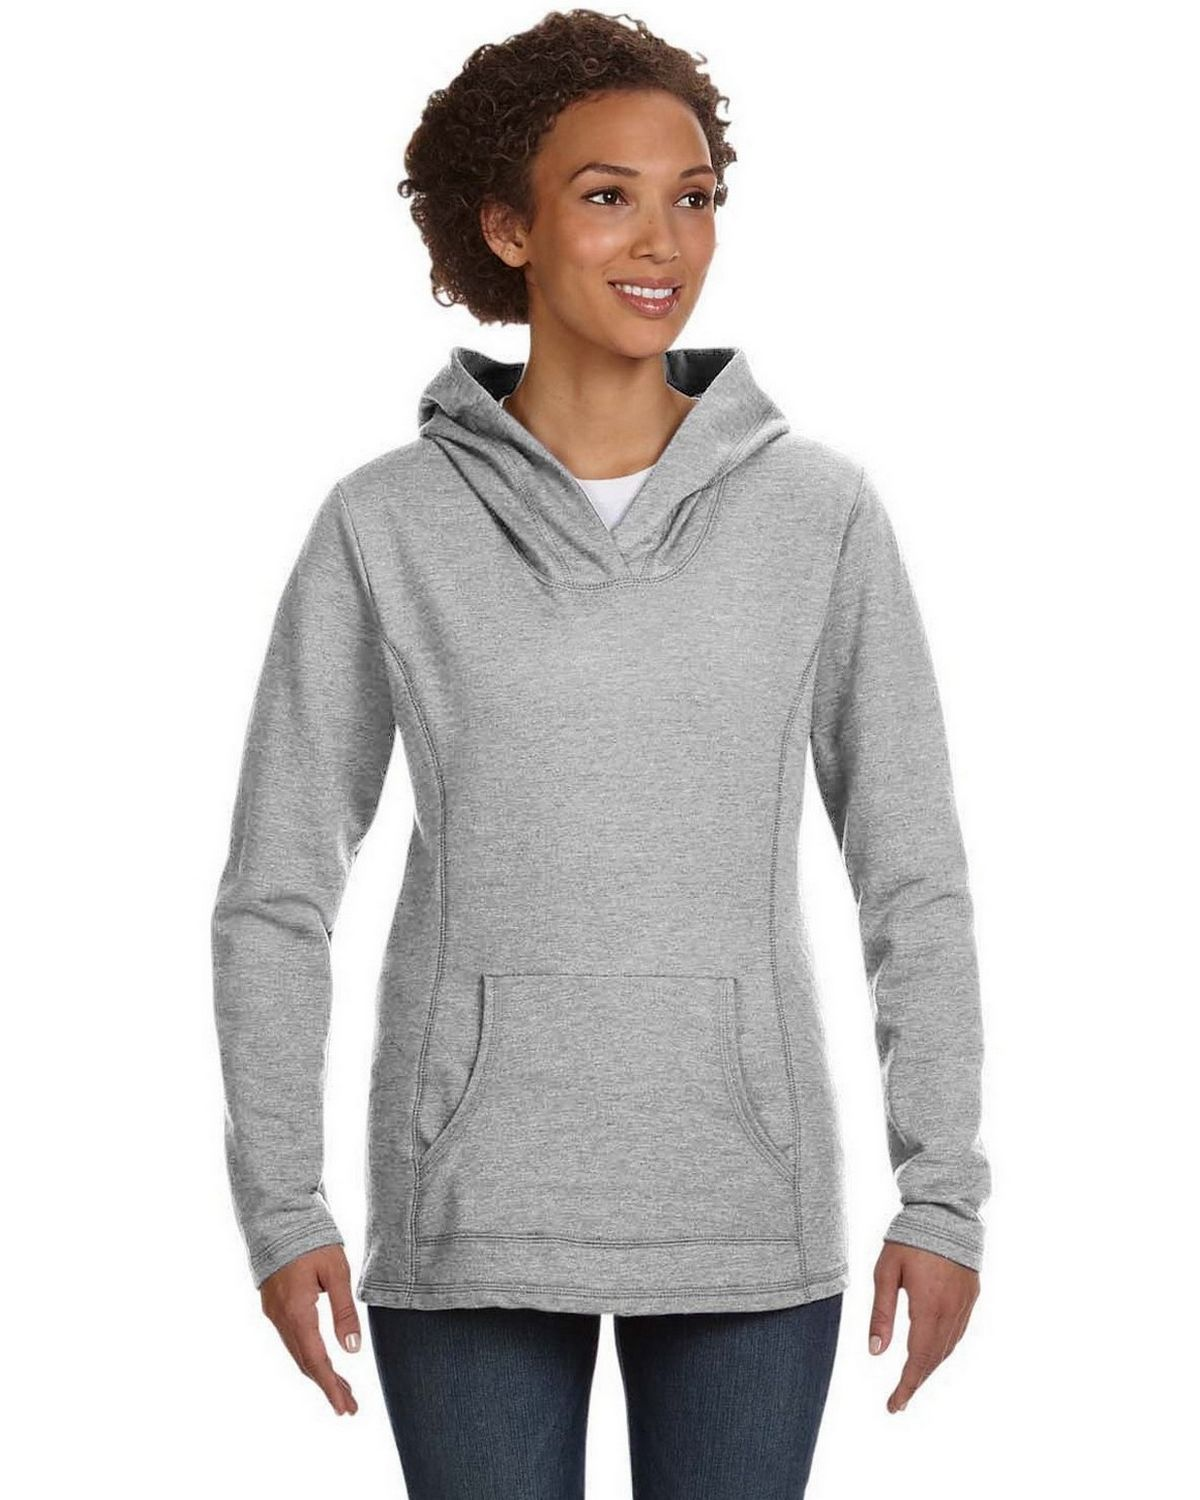 Anvil 72500L Women's Ringspun French Terry Cross-Neck Hooded Sweatshirt